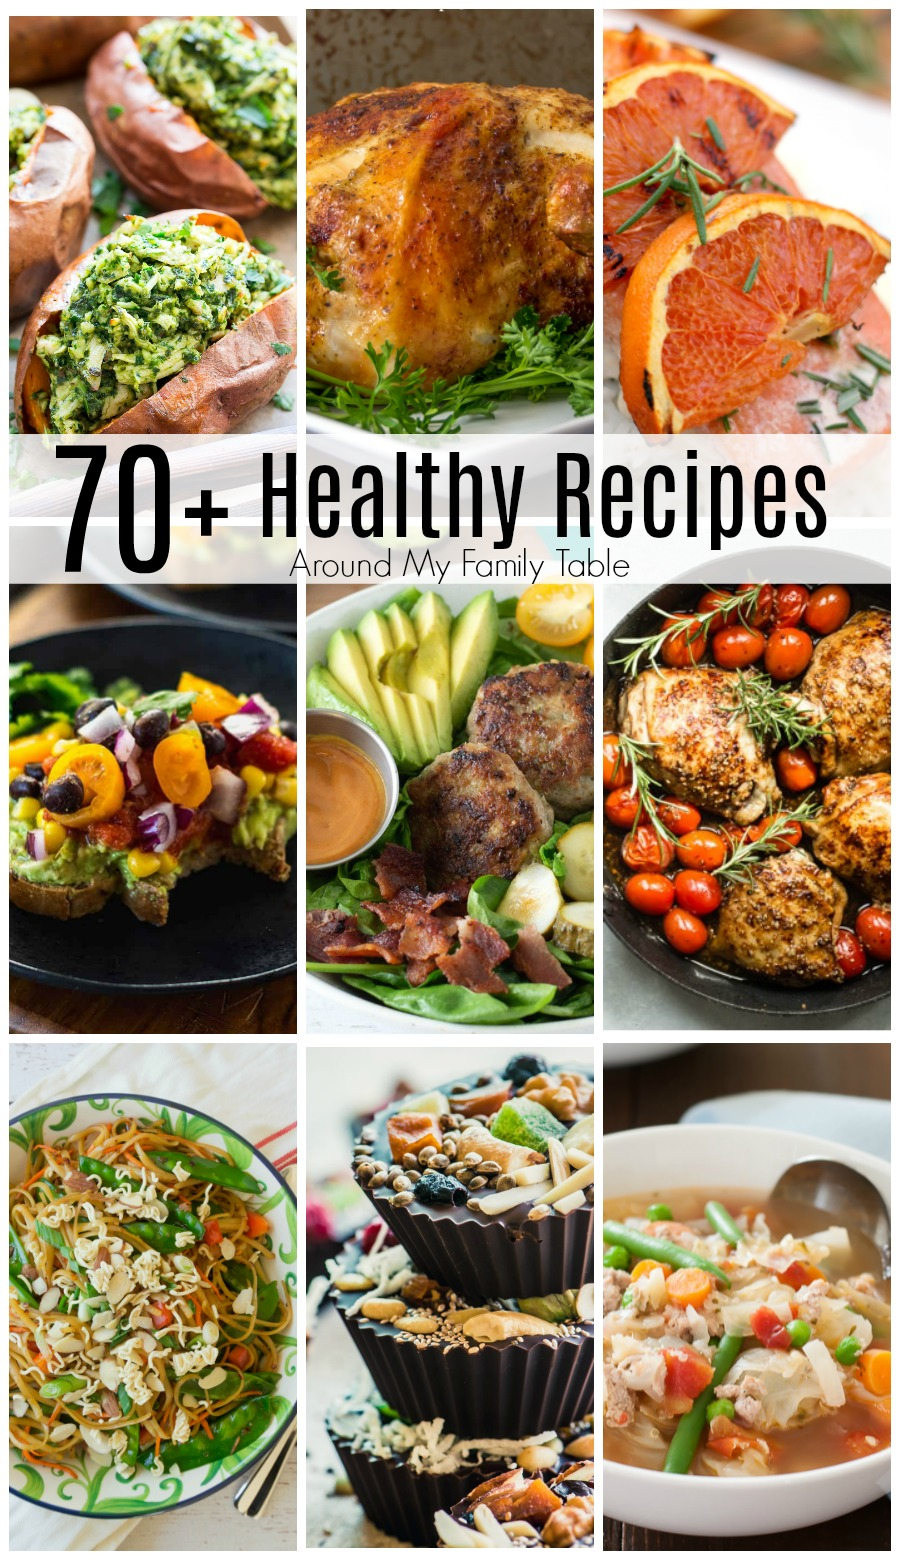 Losing some extra weight or eating a more healthy diet usually tops the list of new resolutions, and this list of over 70 Easy Healthy Recipes will be sure to help you keep on track.  via @slingmama